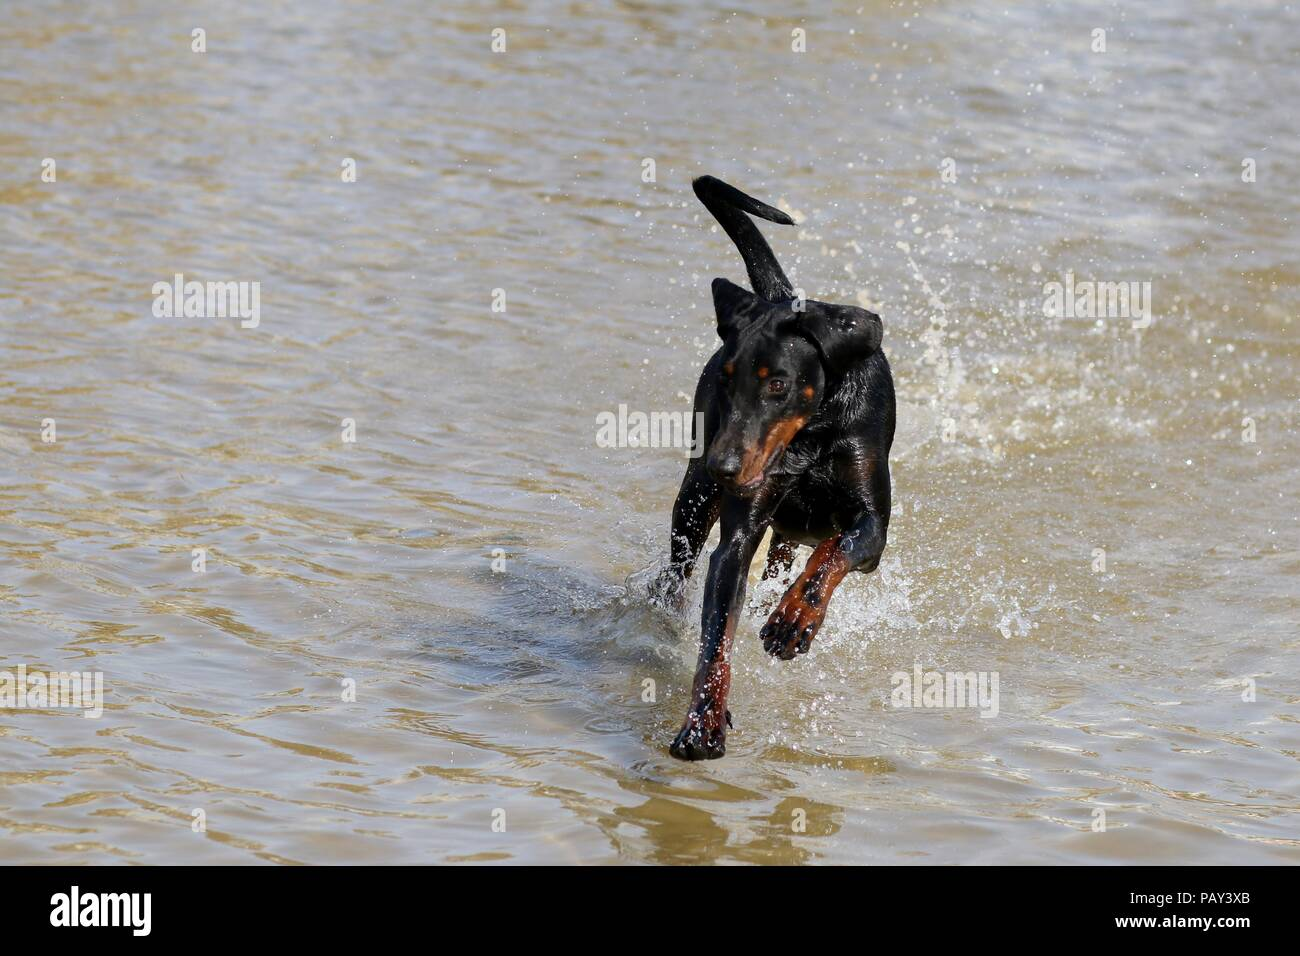 a dog running in the sea on a hot summer day - Stock Image